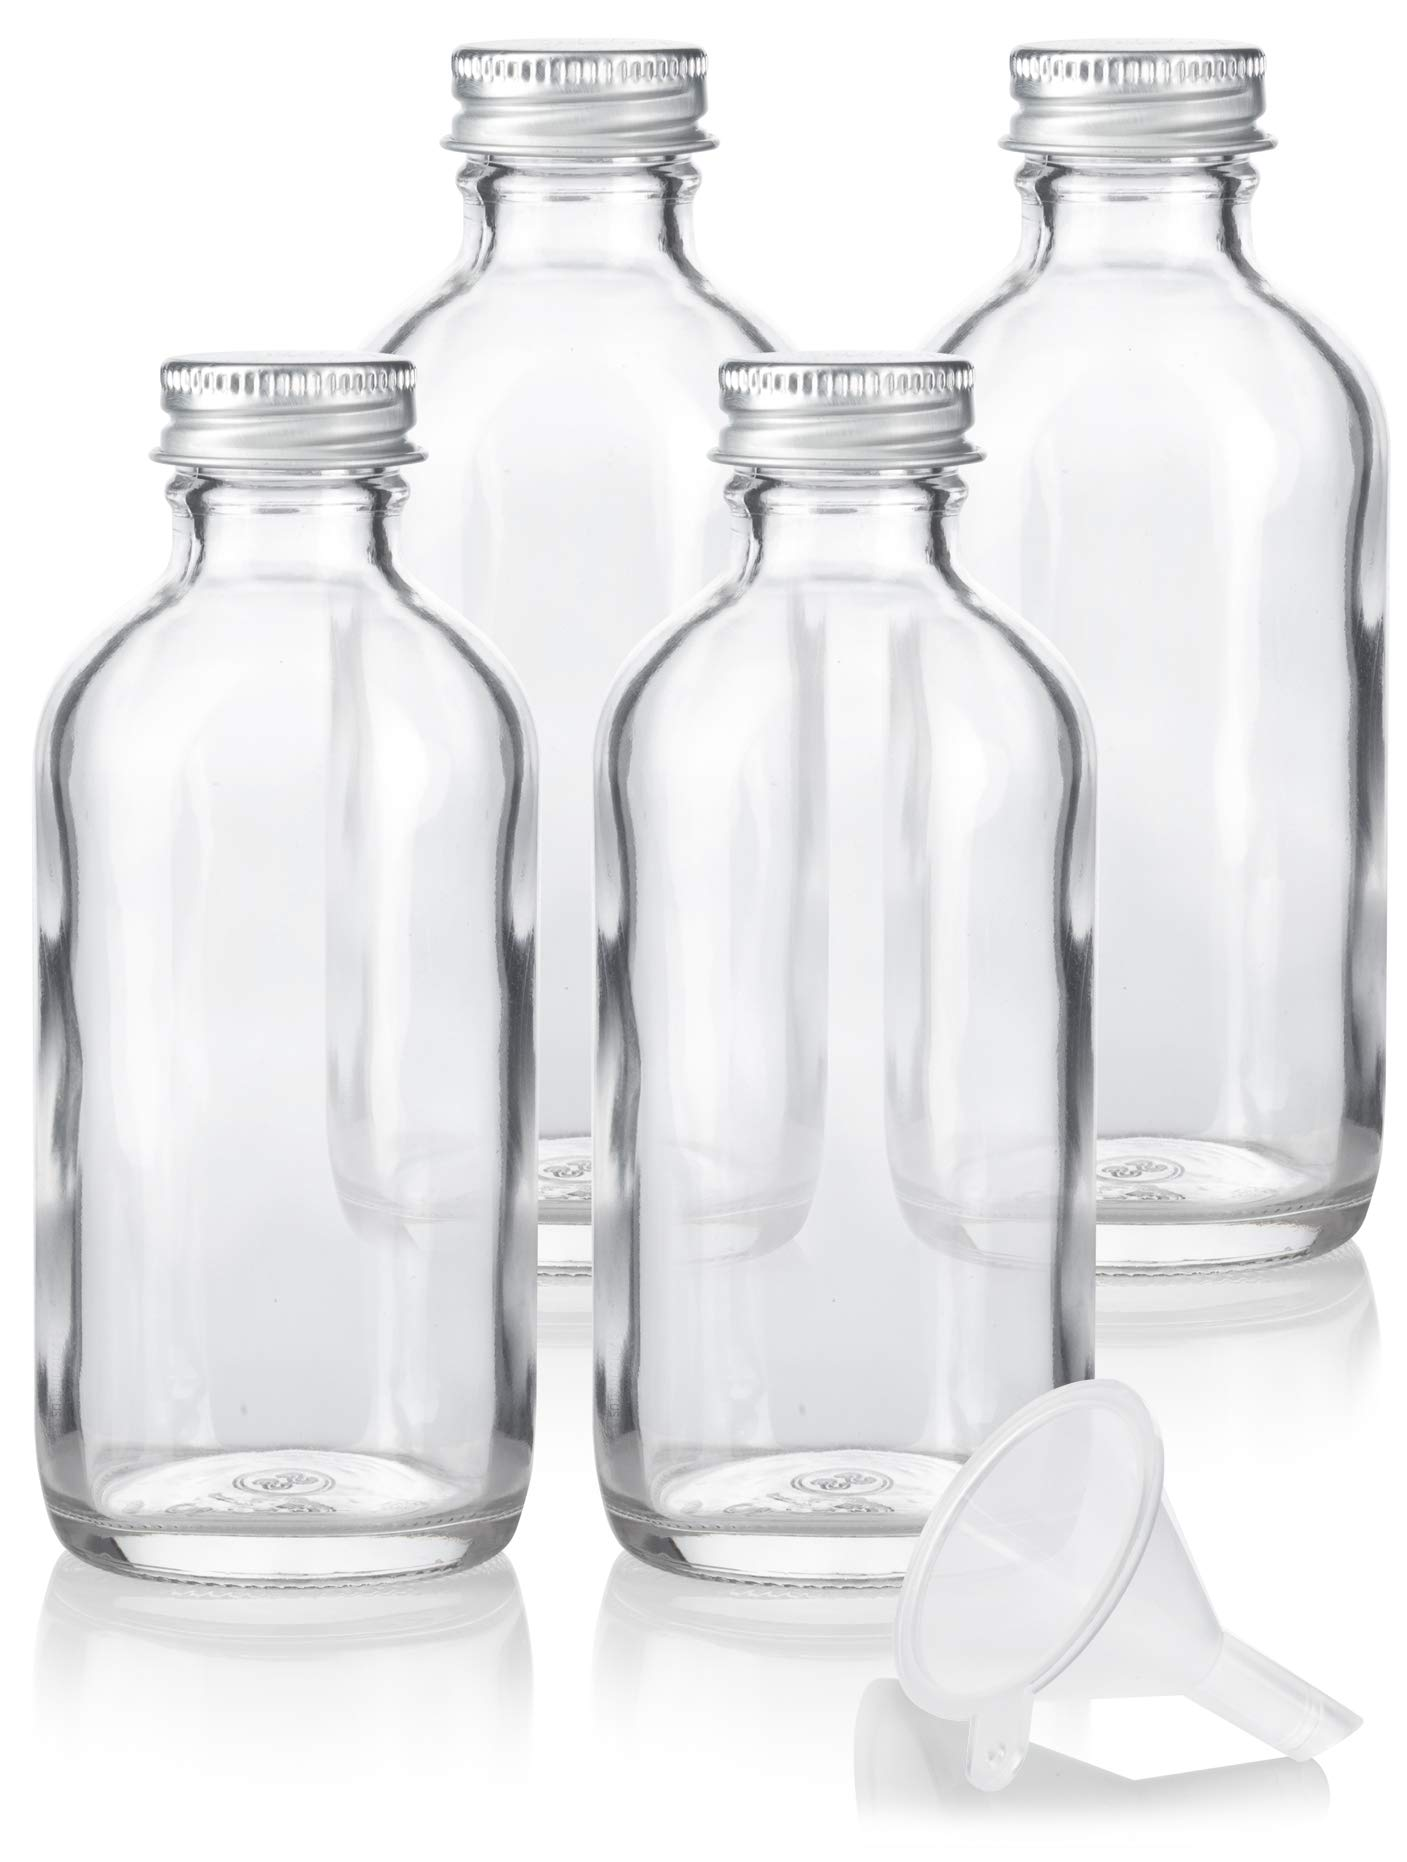 4 oz Clear Glass Boston Round Bottles with Silver Metal Screw On Caps (4 Pack) + Funnel by JUVITUS